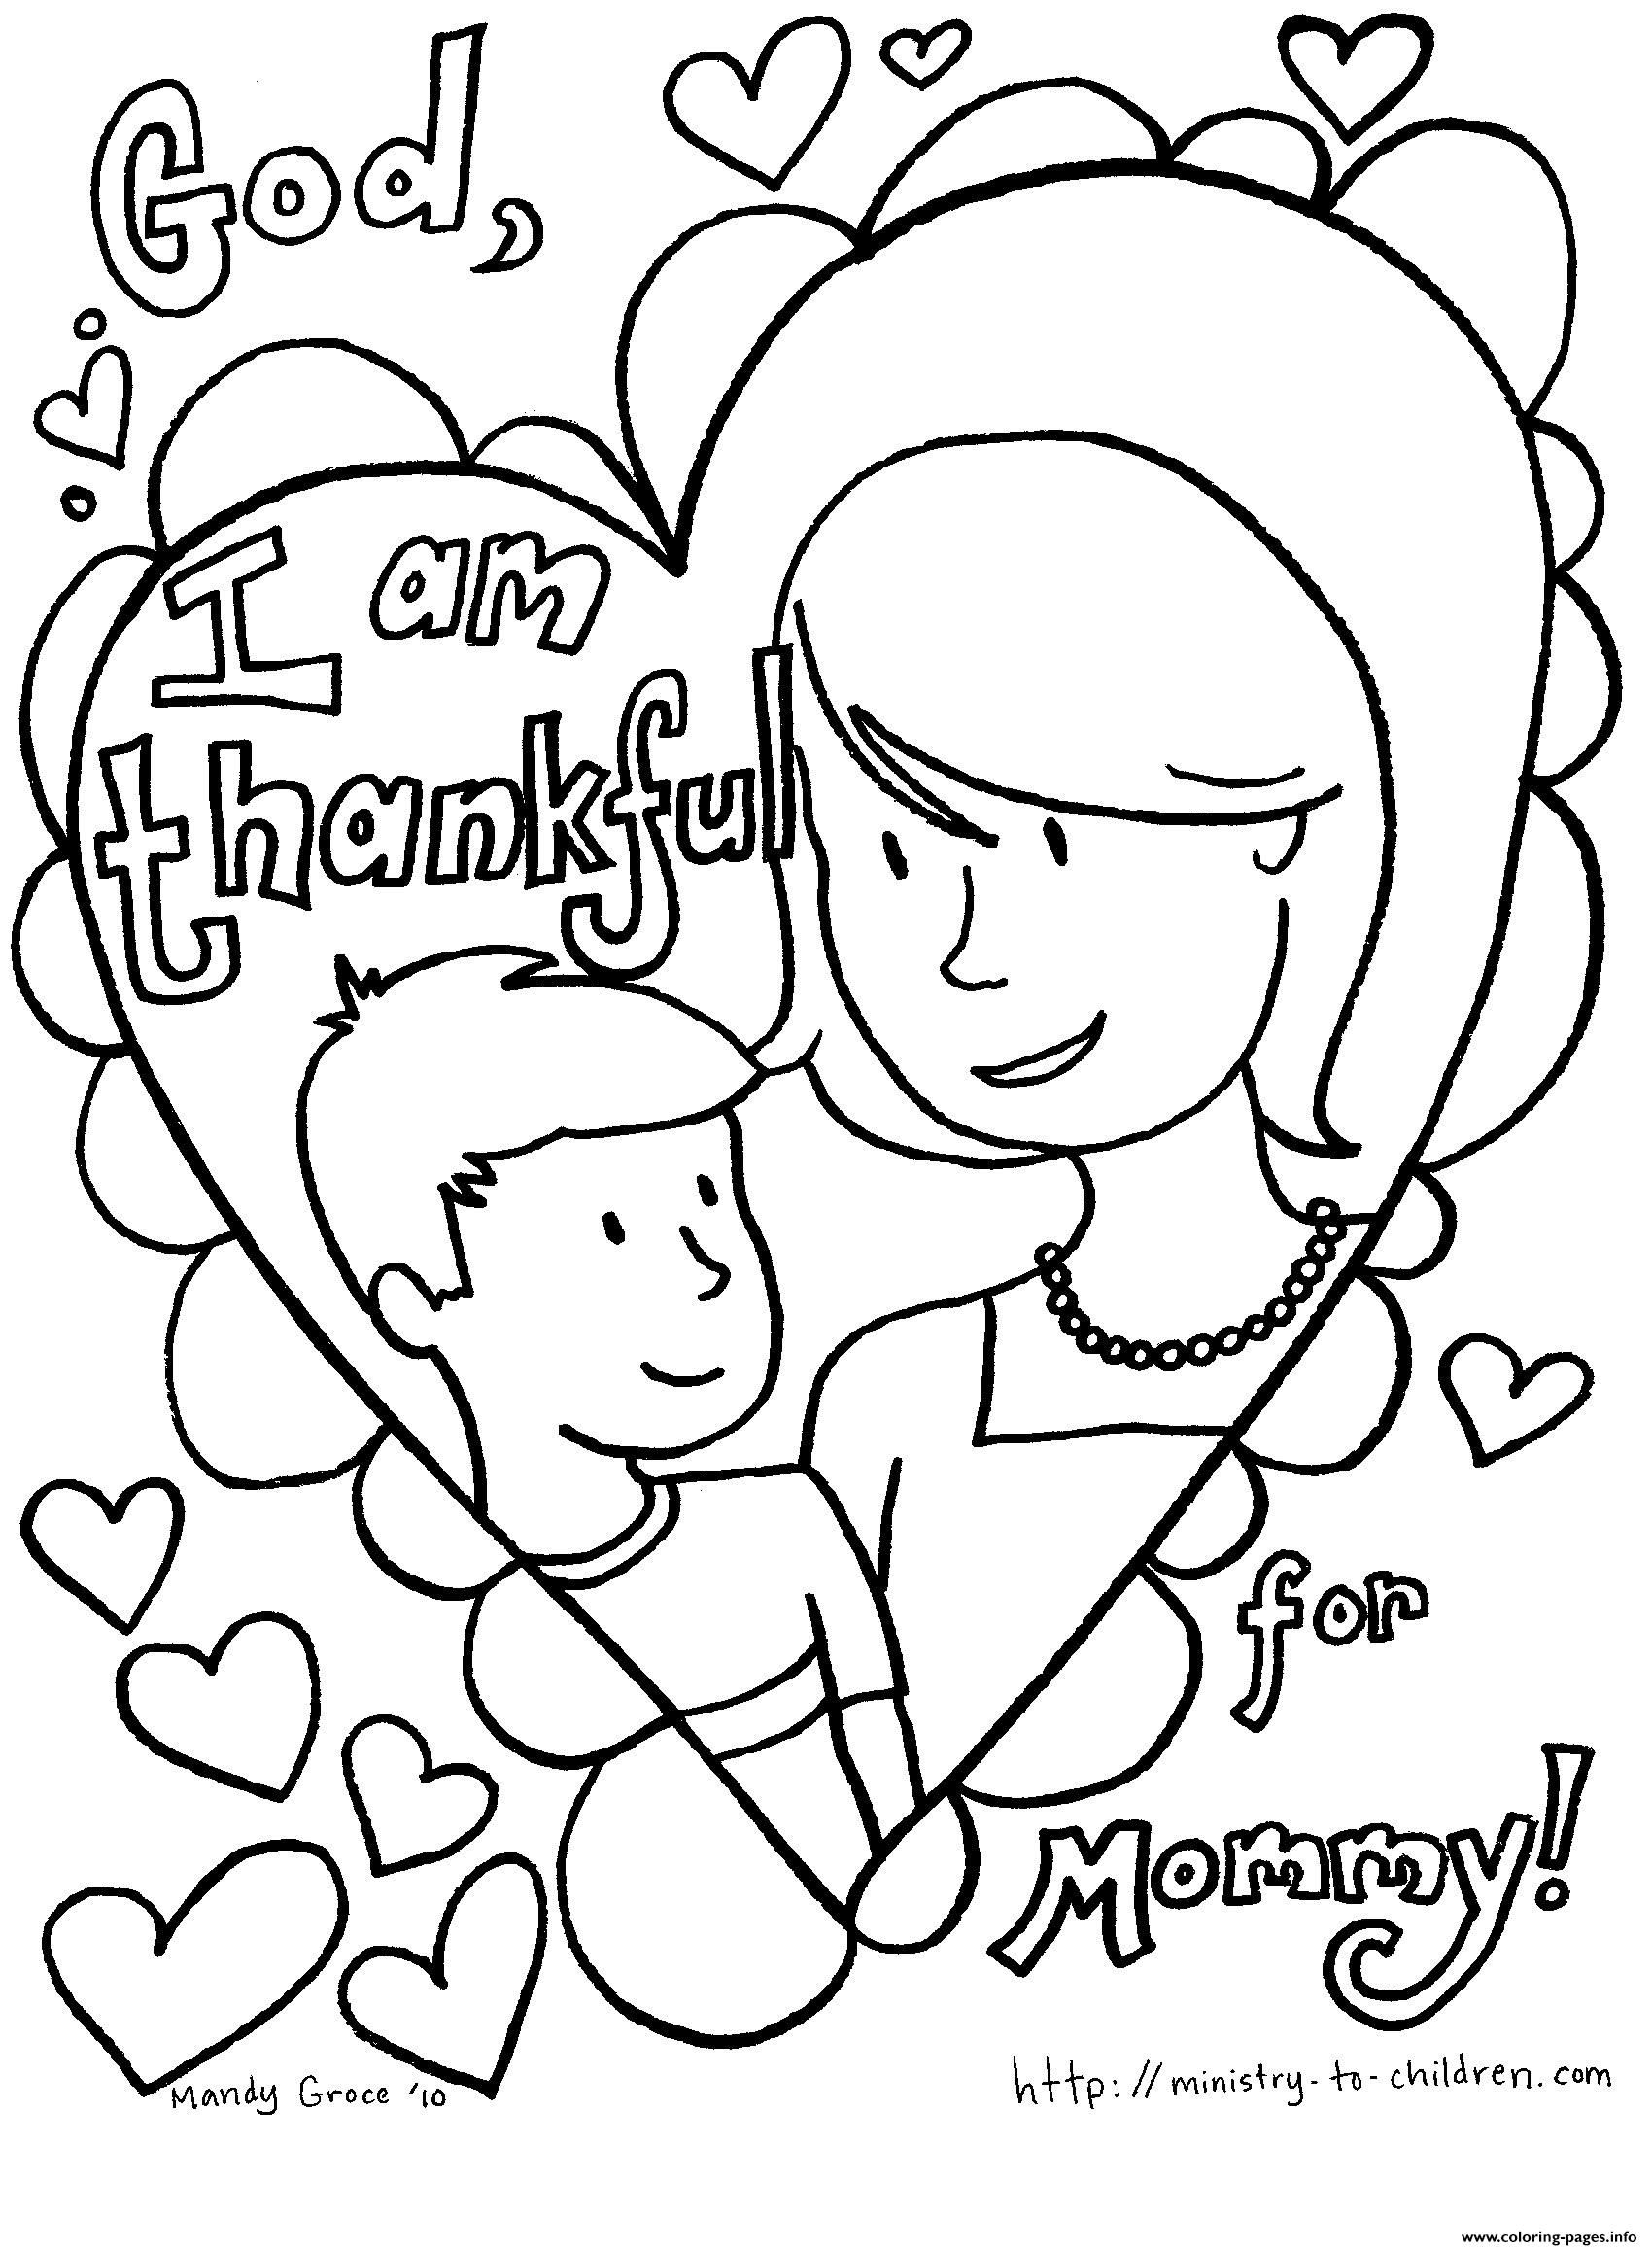 Mothers Day I Am Thankful For Mommy Coloring Pages Printable